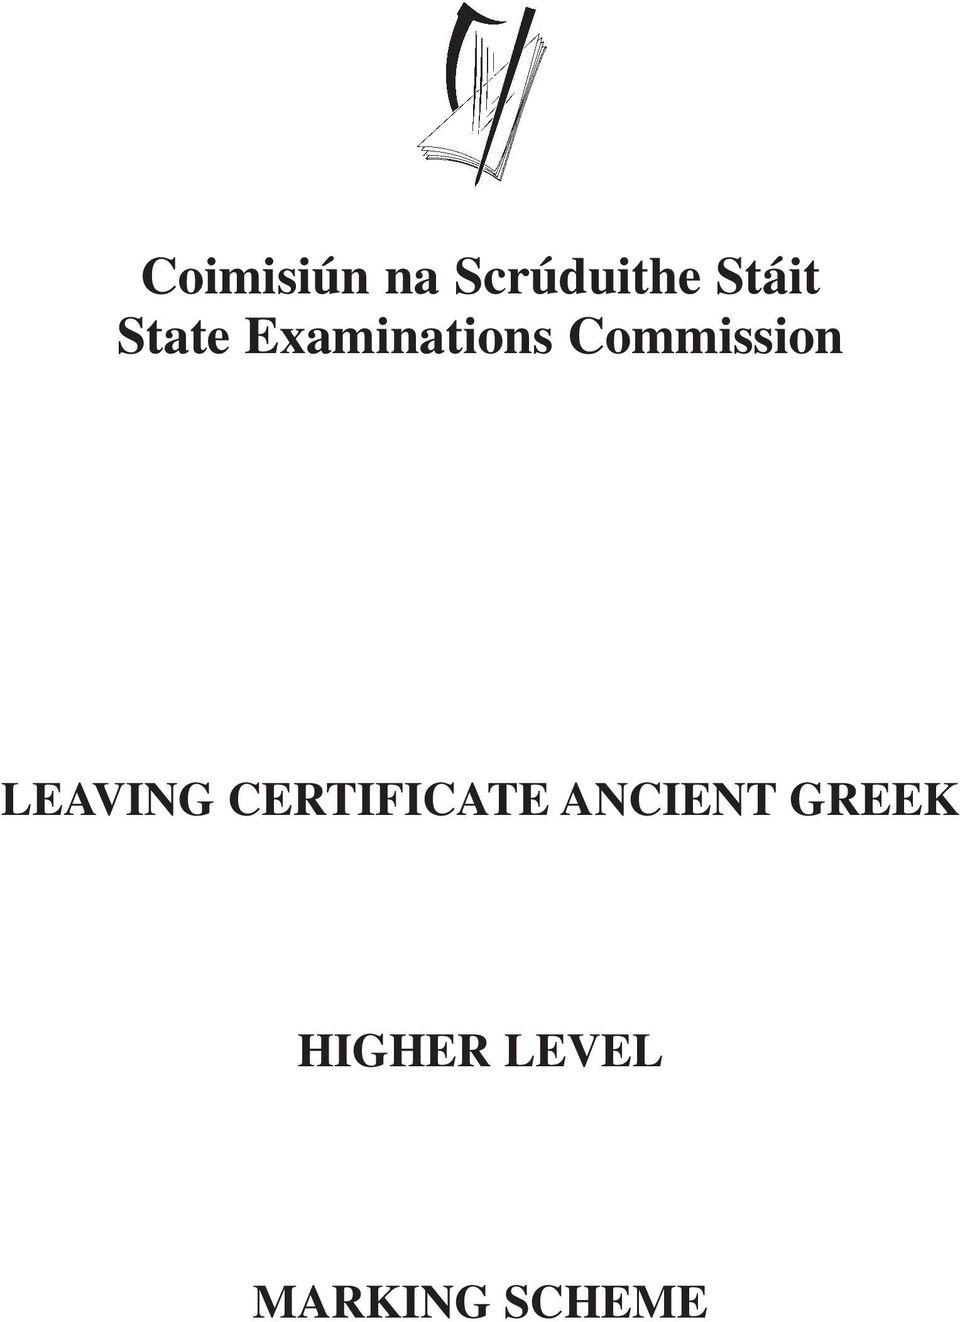 LEAVING CERTIFICATE ANCIENT